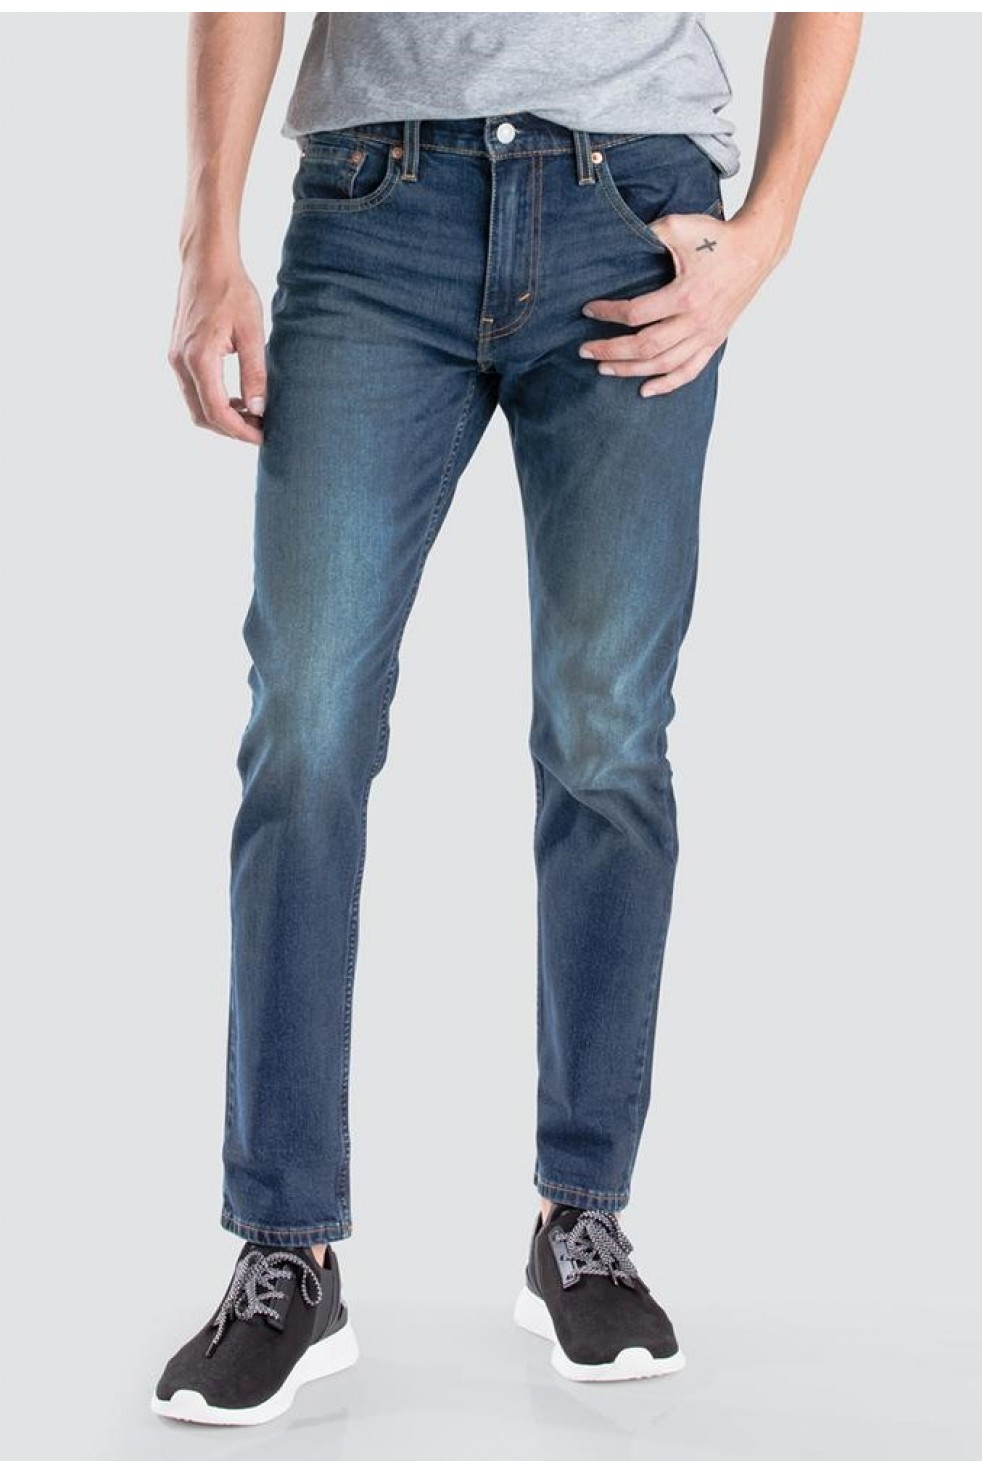 Levis-Erkek-Jean-Pantolon-512-Slim-Taper-Fit-28833-0317